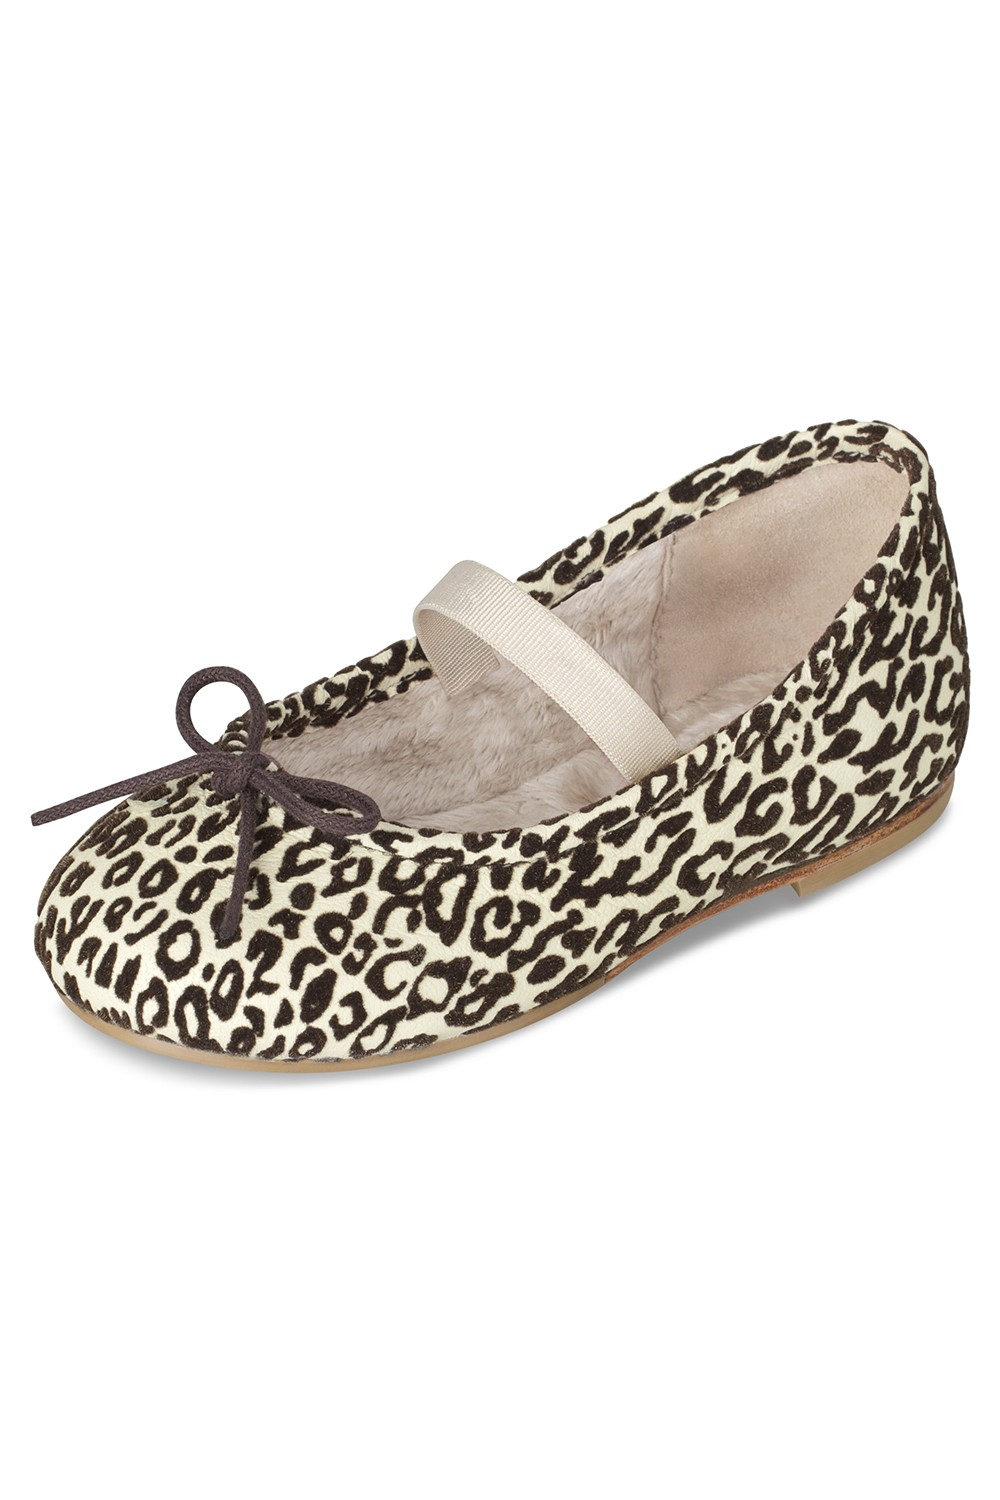 Arabella Leopard - Fellfutter Kleinkind Toddlers Fashion Shoes